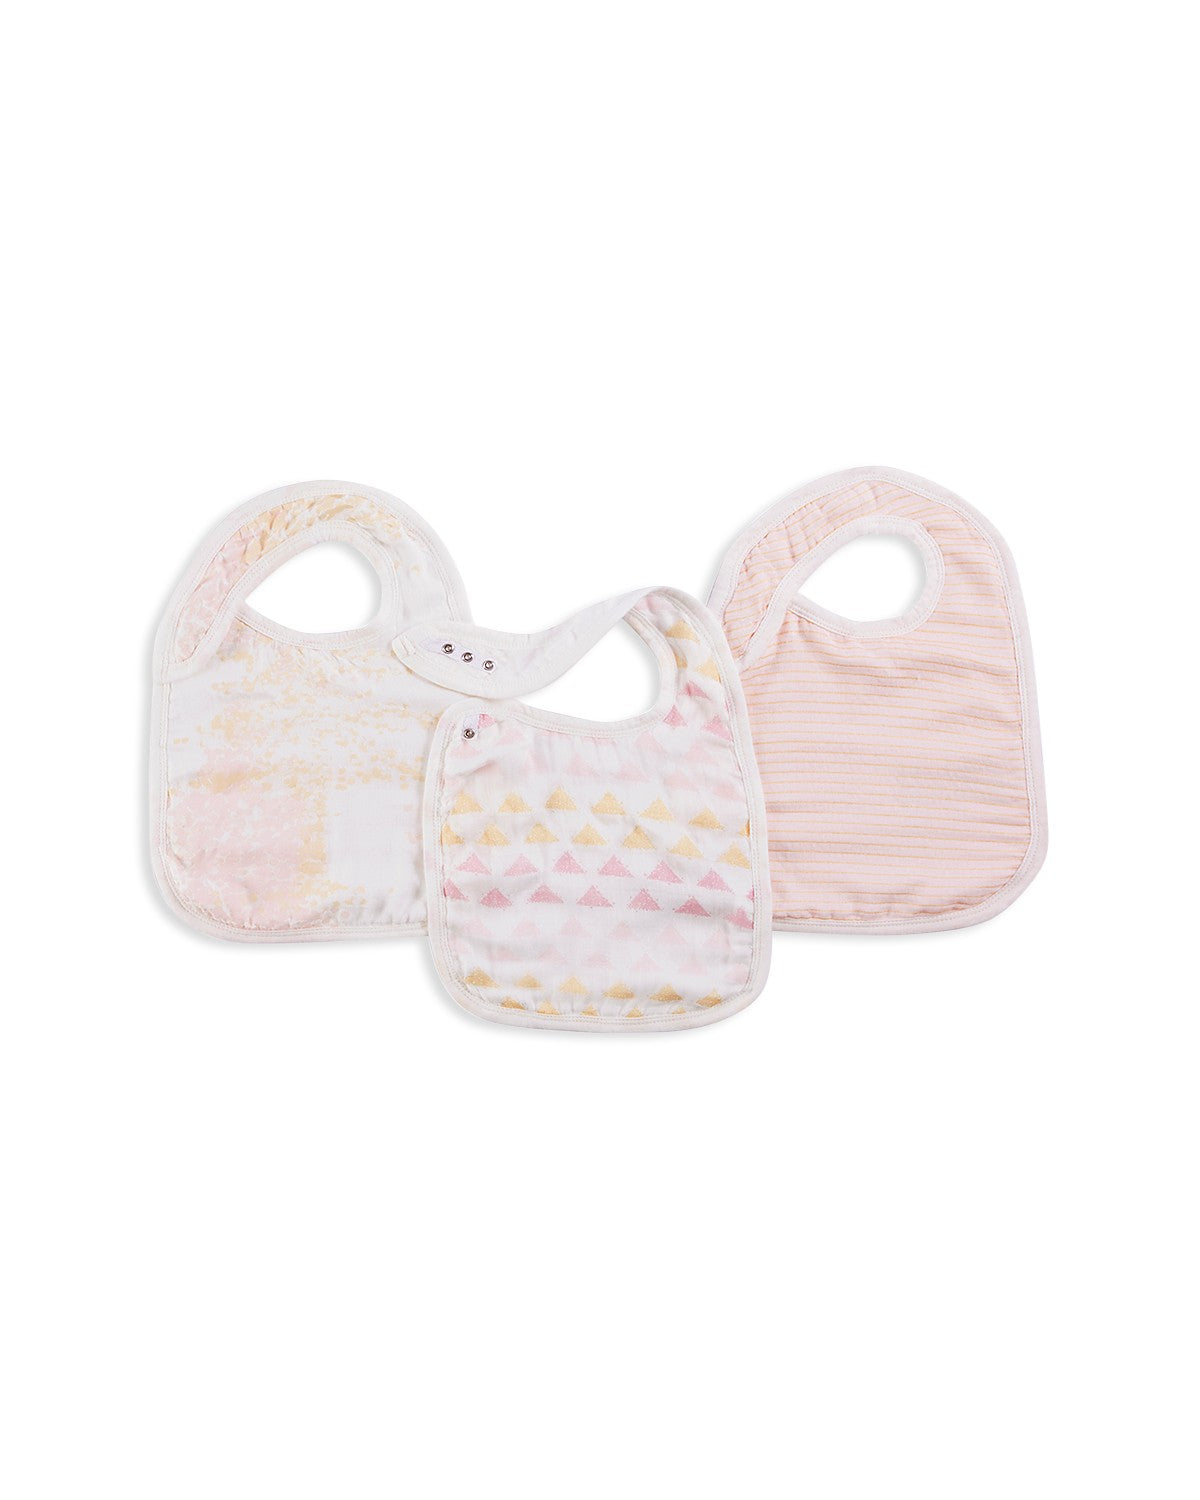 Aden and Anais Metallic-Print Bibs, 3 Pack